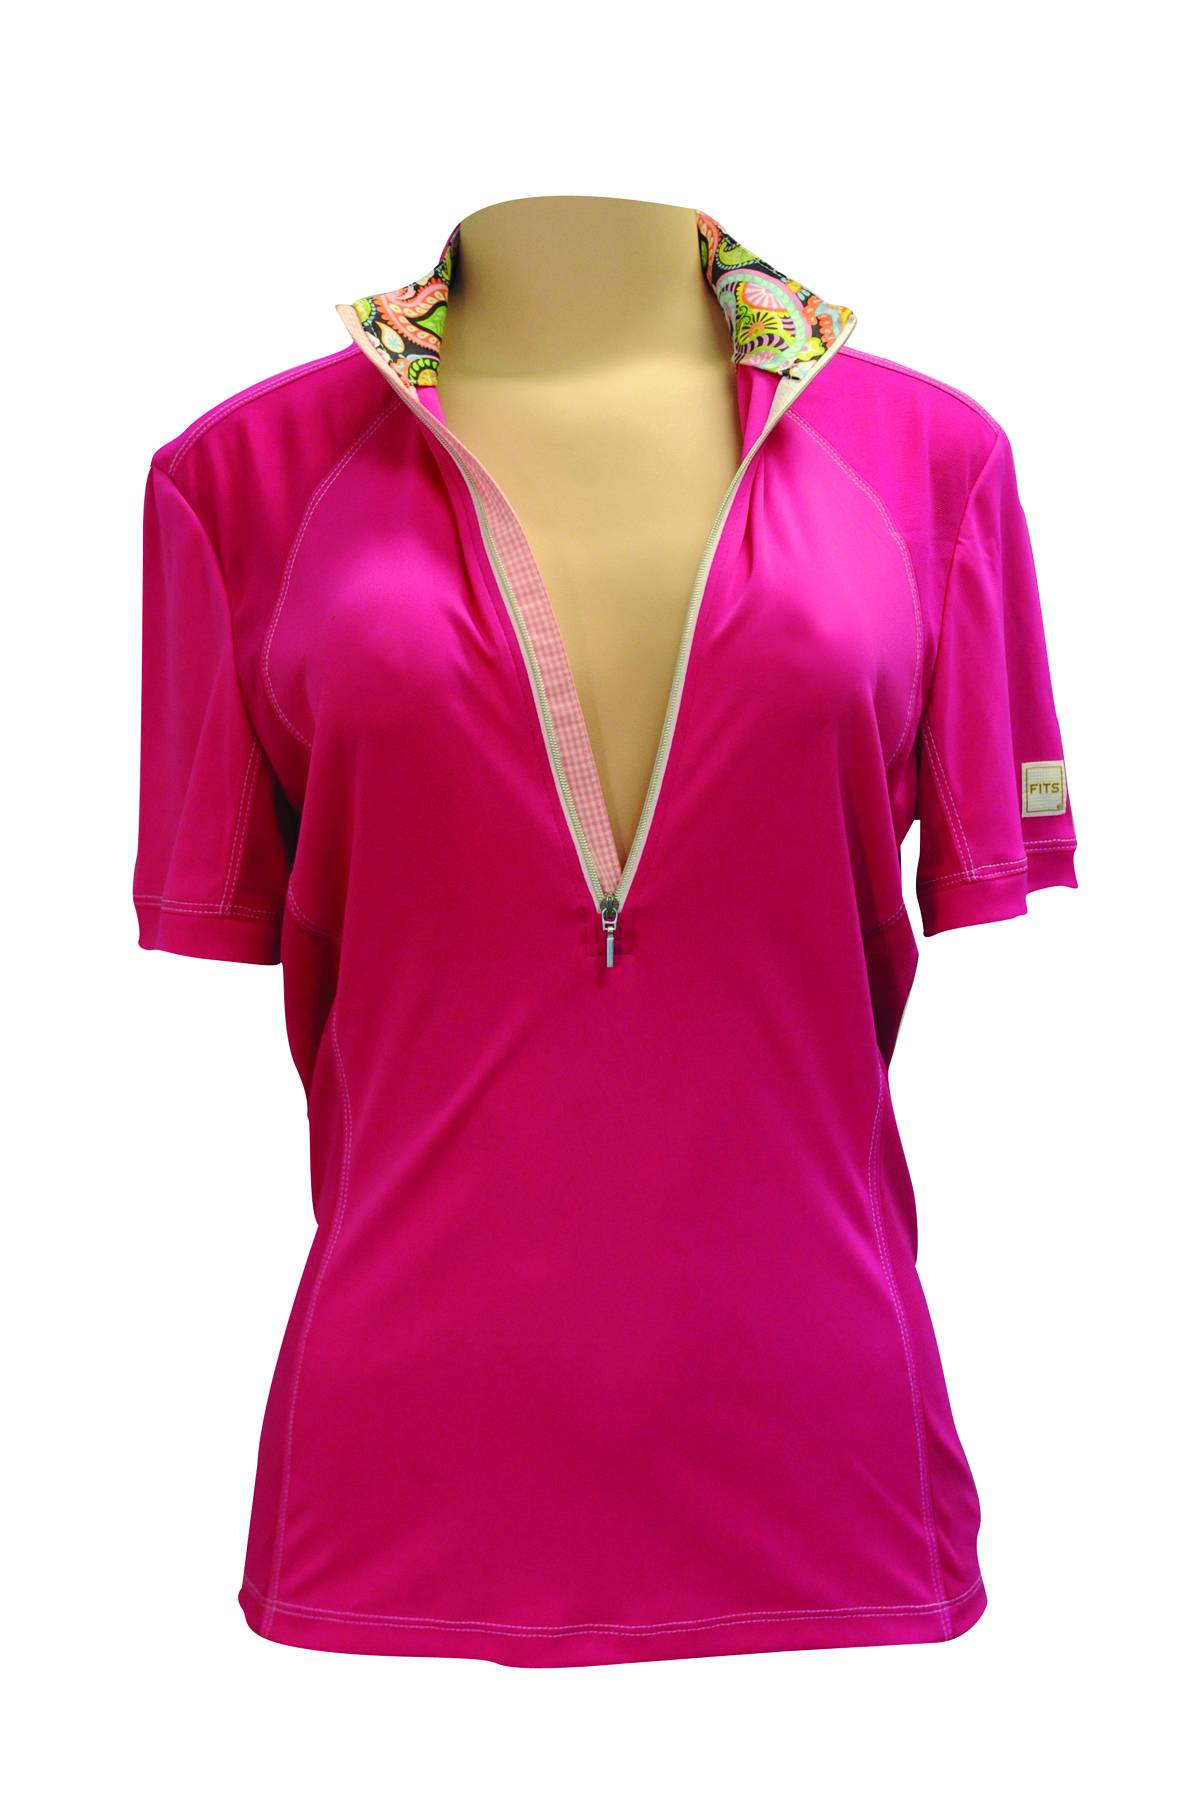 FITS Sea Breeze Short Sleeve Tech Shirt - Ladies - Pink